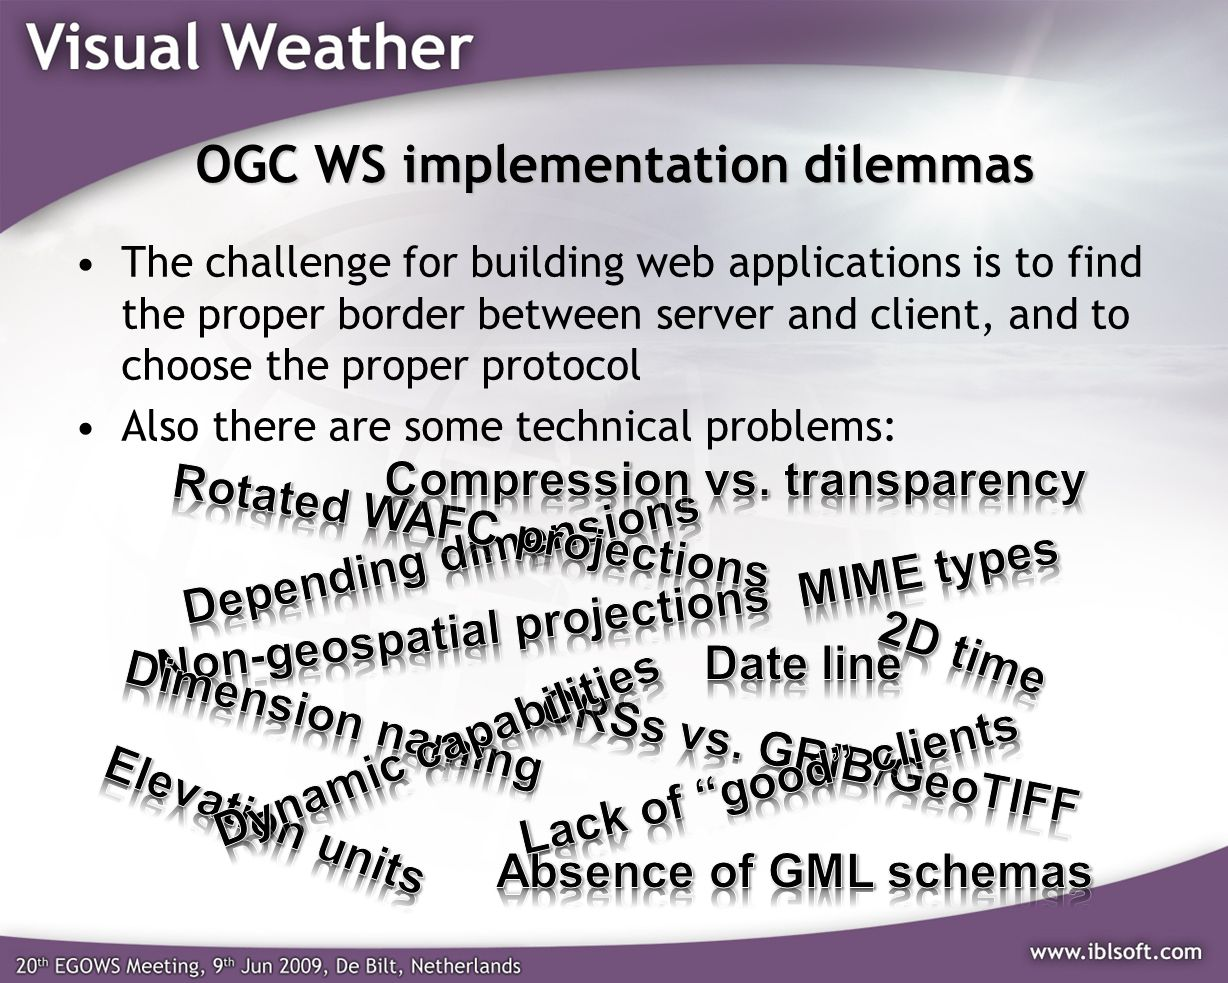 OGC WS implementation dilemmas